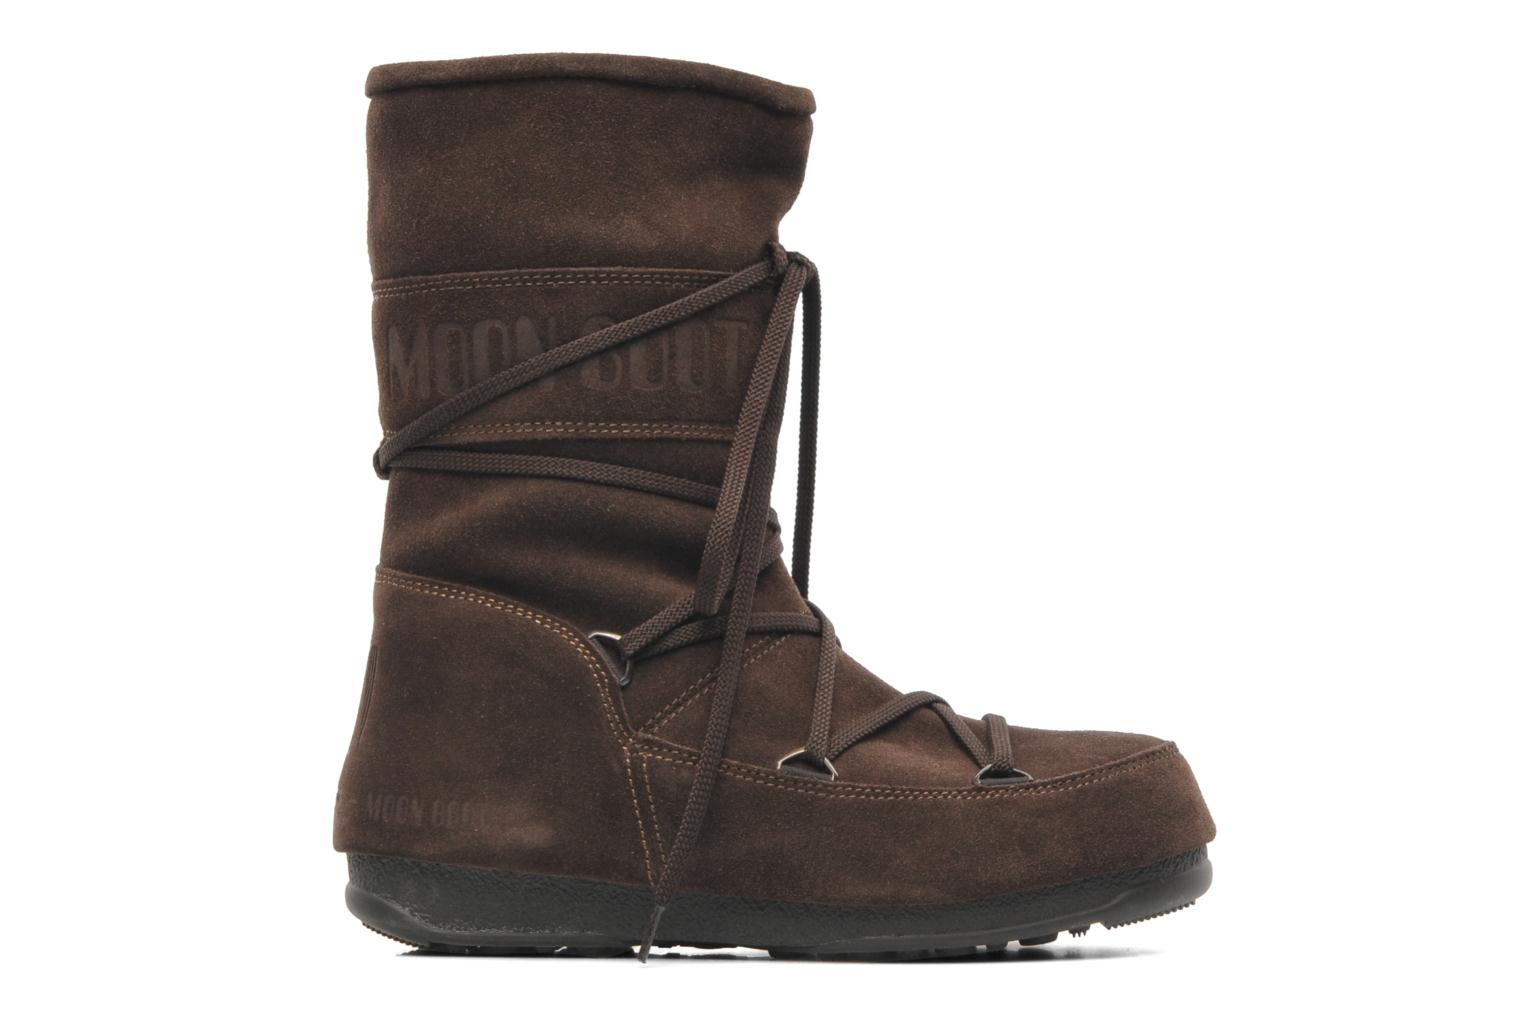 moon boot caviar mid ankle boots in brown at sarenza co uk